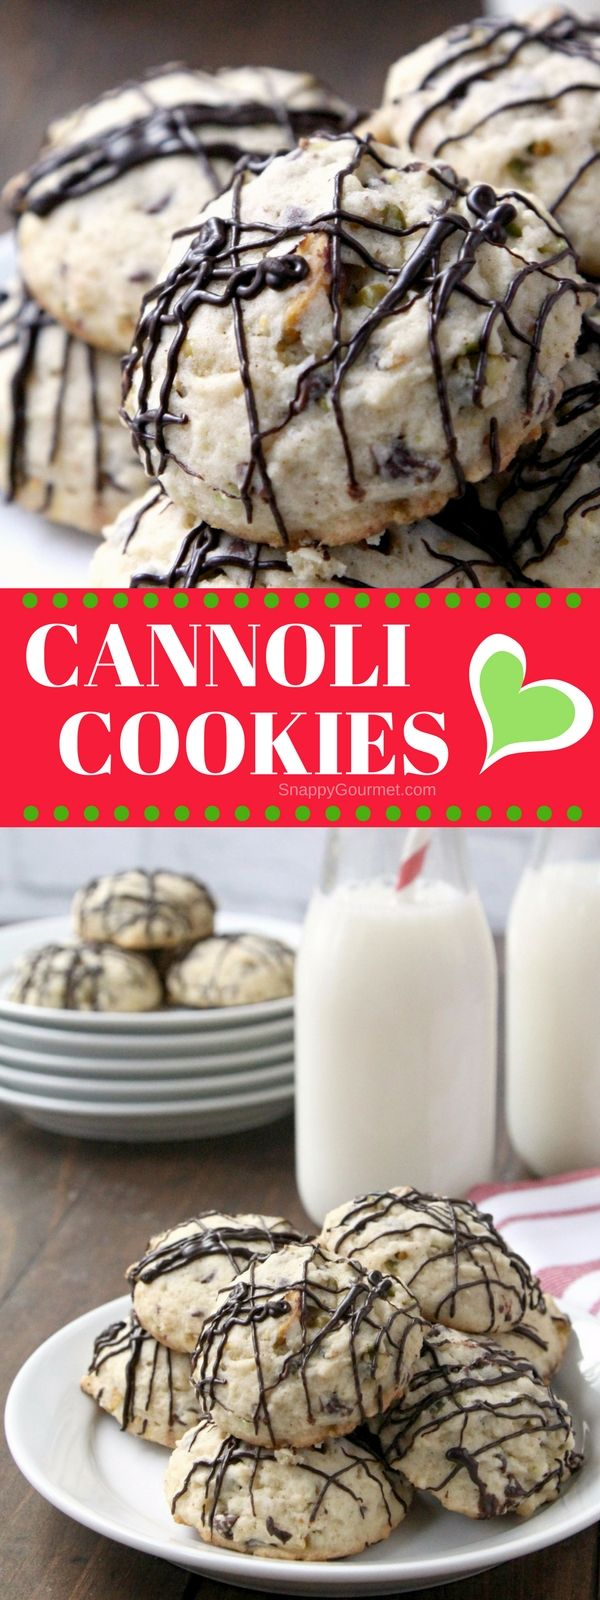 Holy Cannoli Cookies, an easy recipe for cannoli cookies with ricotta, chocolate chips, and pistachios! Fun Italian Christmas cookies, inspired by Italian cannolis